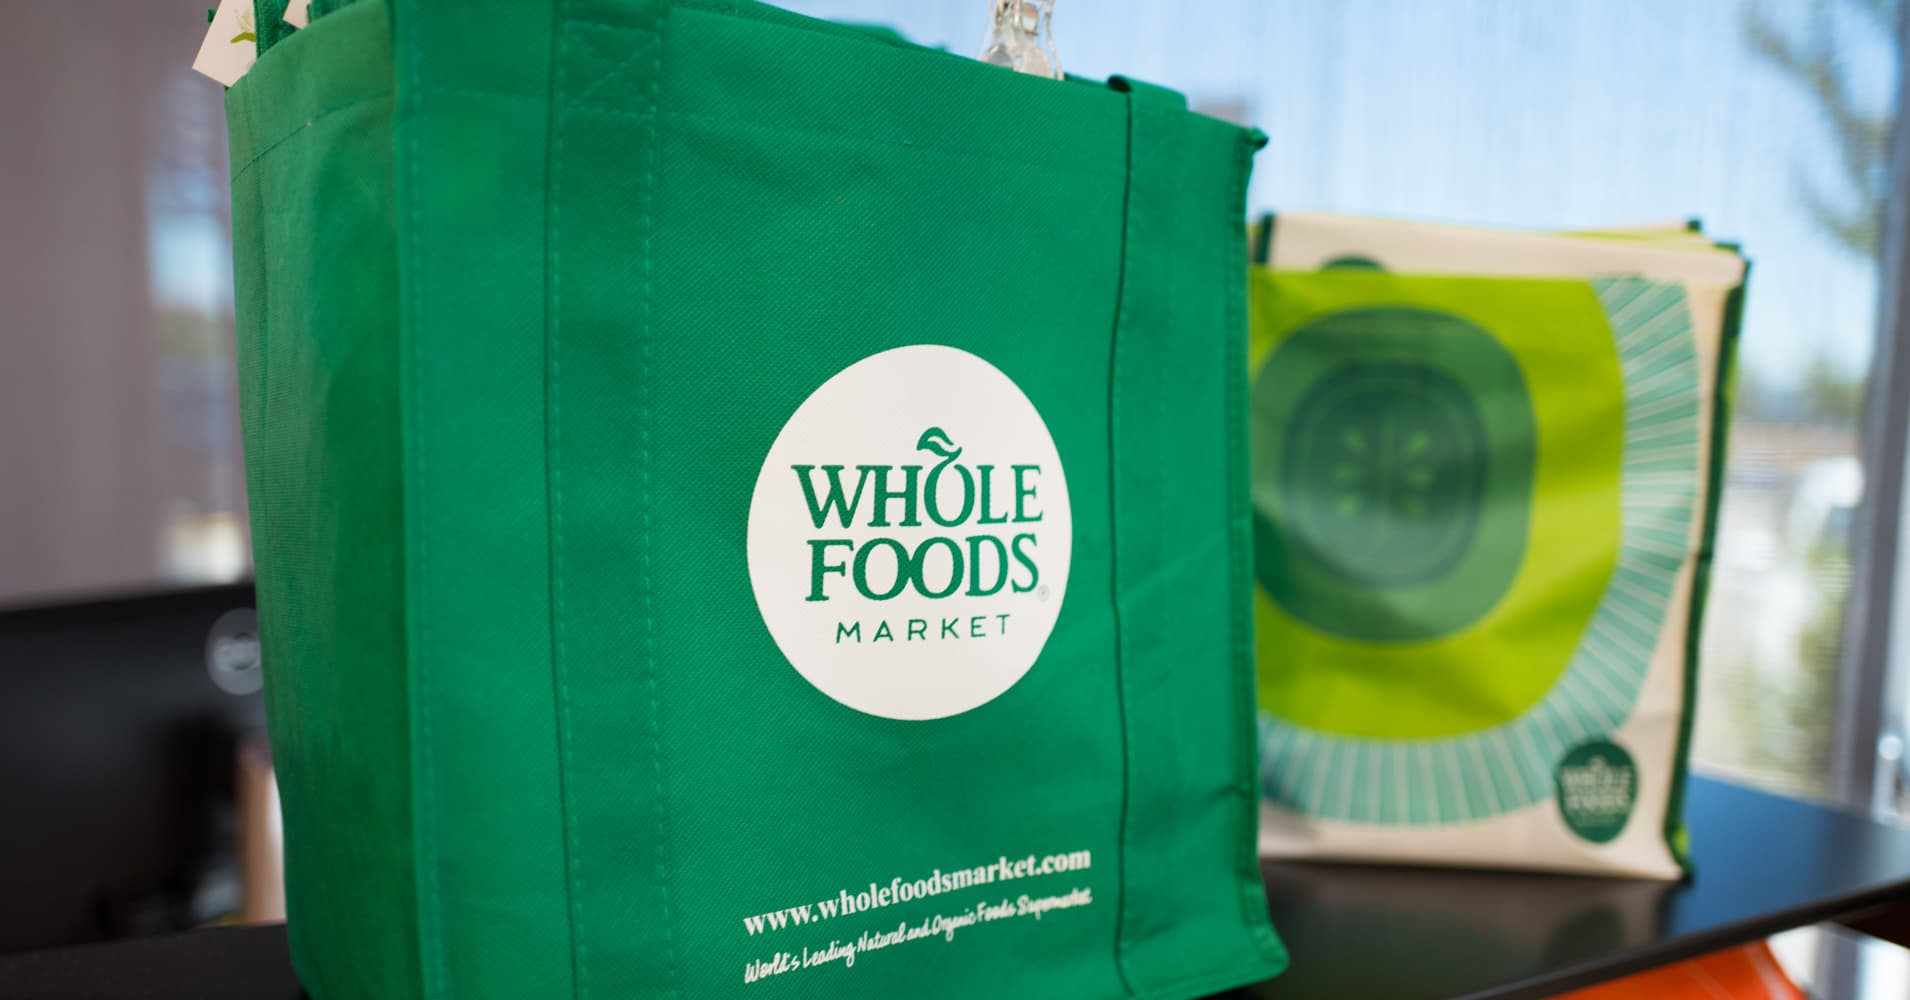 Amazon to expand Whole Foods stores: WSJ